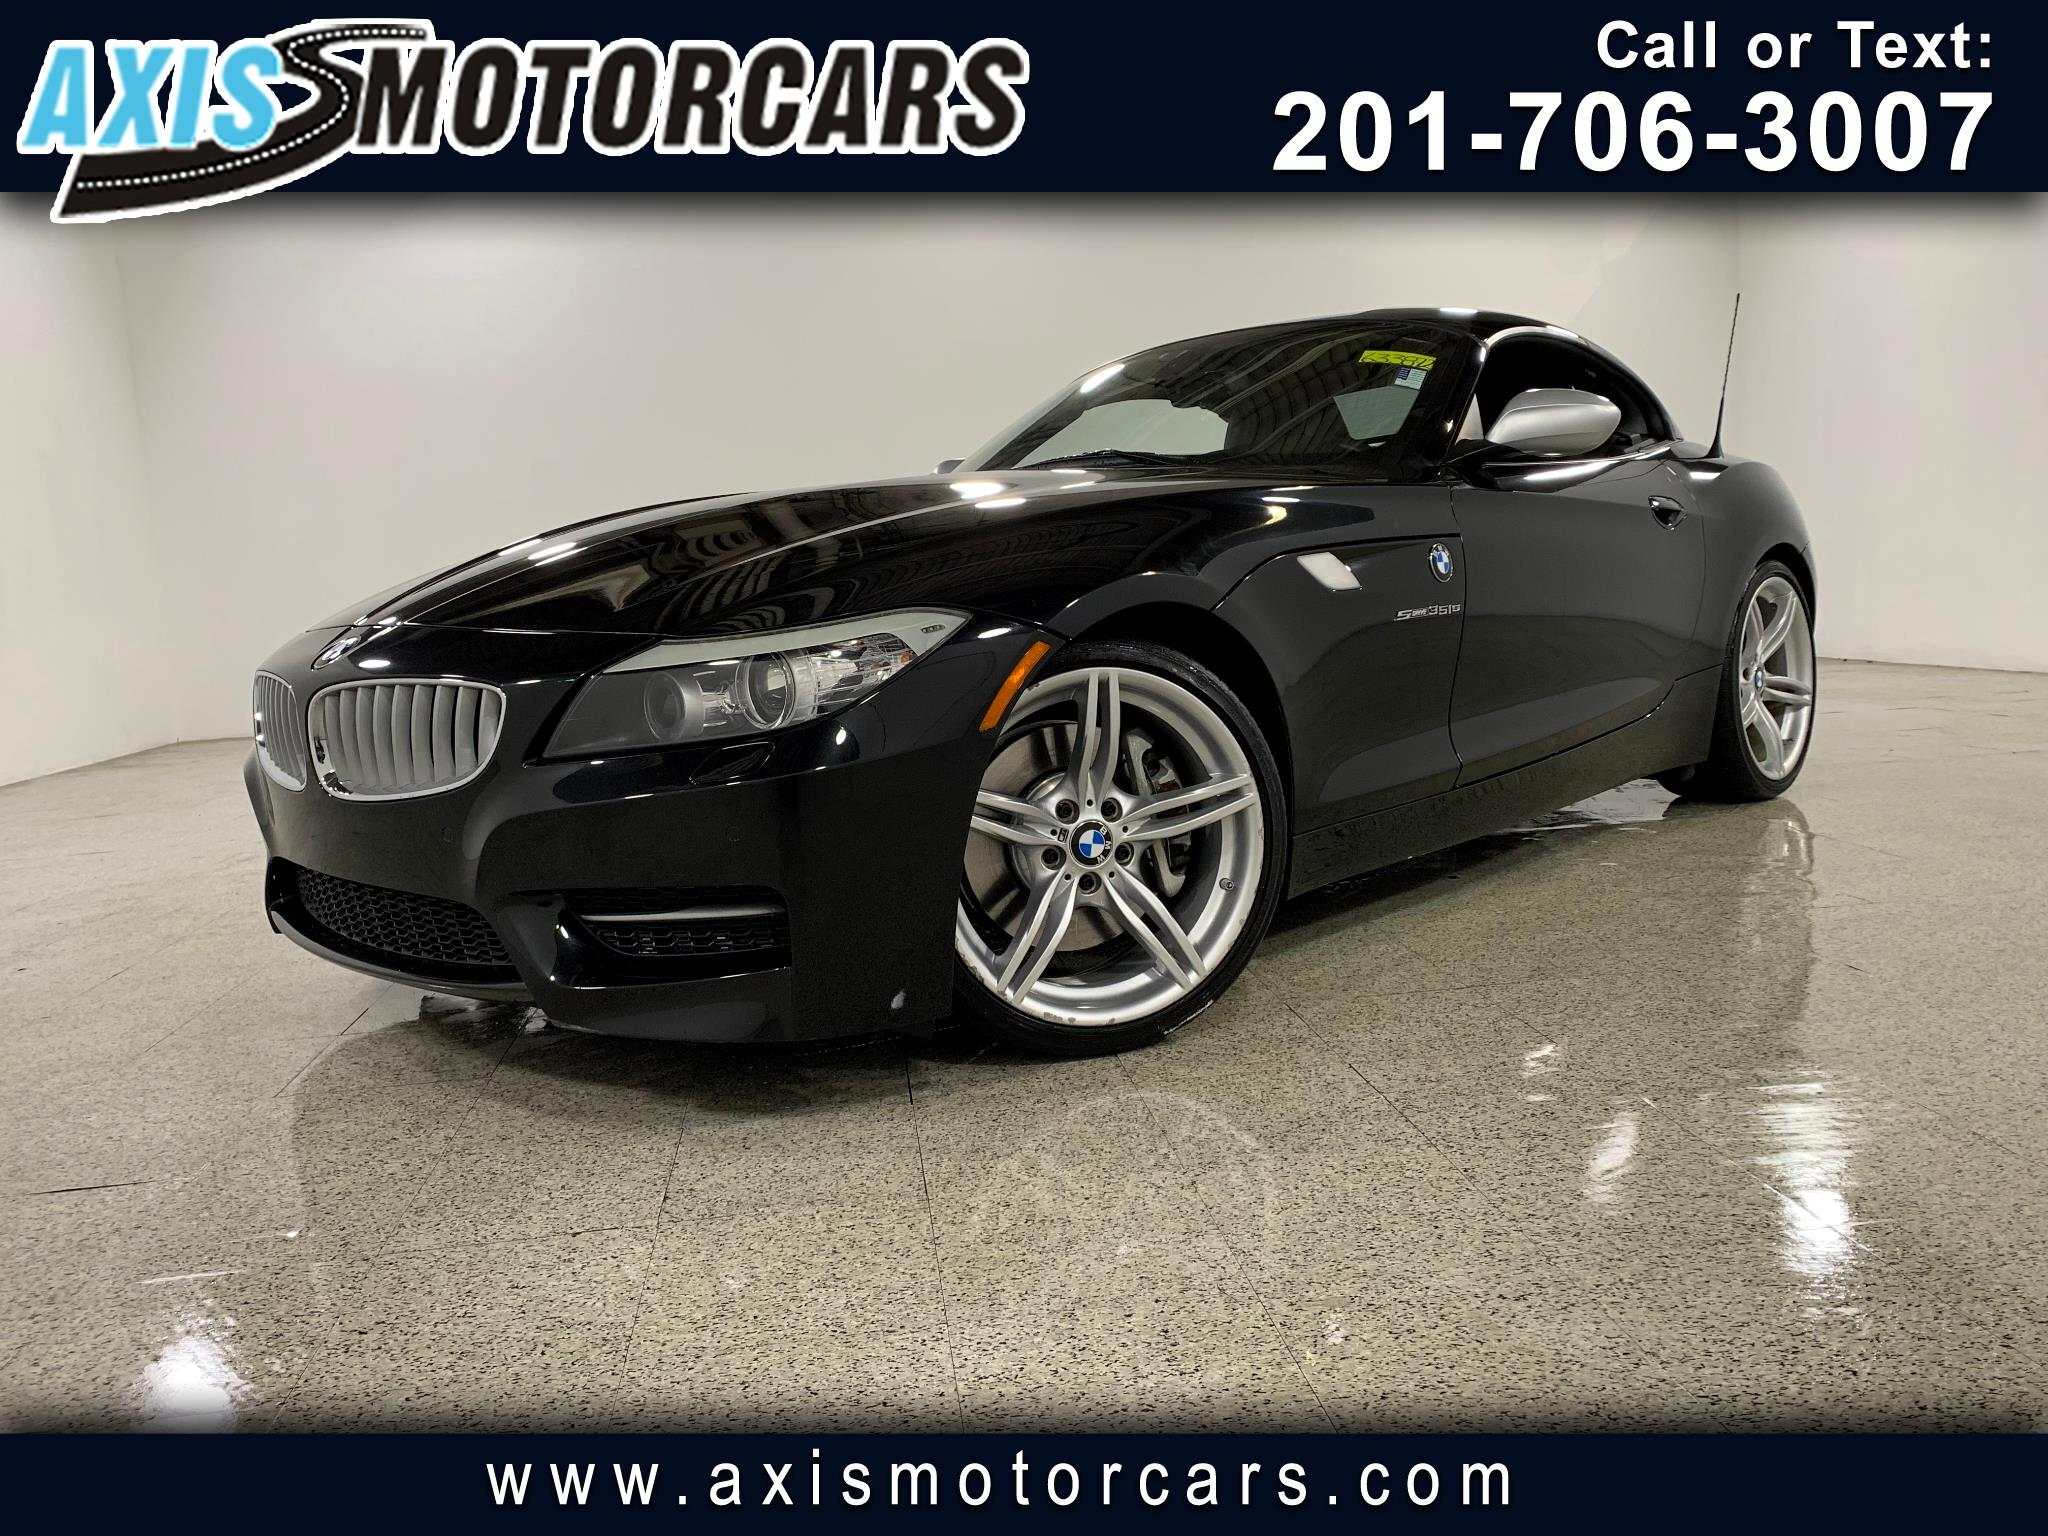 2013 BMW Z4 sDrive35is M PKG w/Navigation